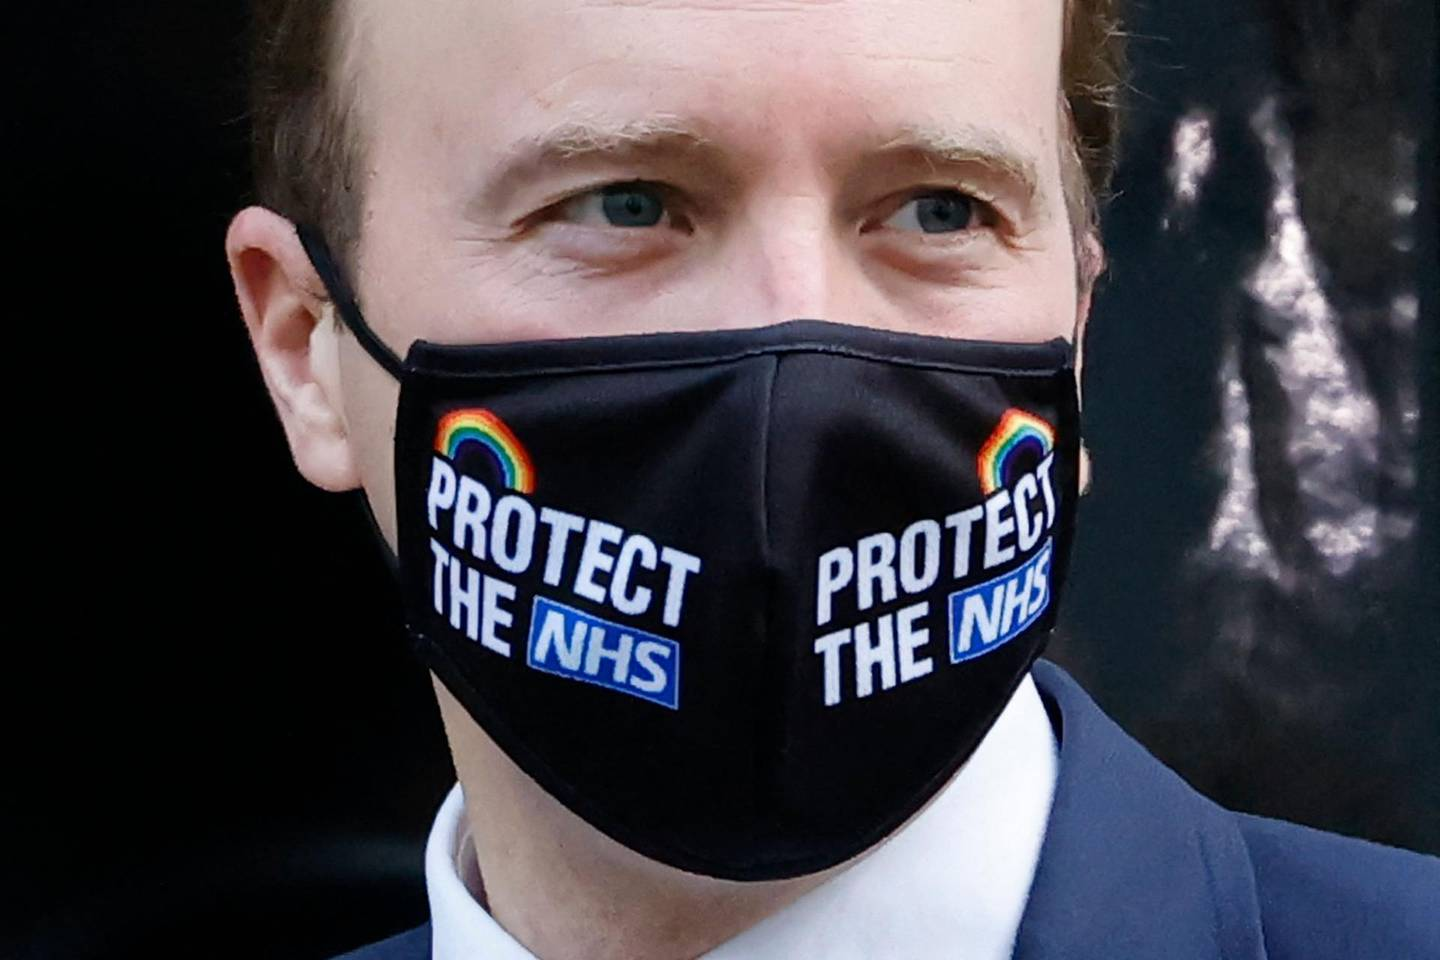 (FILES) In this file photo taken on December 16, 2020 Britain's Health Secretary Matt Hancock arrives at 10 Downing Street wearing a 'protect the NHS' mask because of the coronavirus pandemic in London. A British newspaper on June 25, 2021, reported that Britain's Health Secretary Matt Hancock has been having an affair with a close aide Gina Coladangelo, whom he appointed to his team in secret last year. / AFP / Tolga Akmen